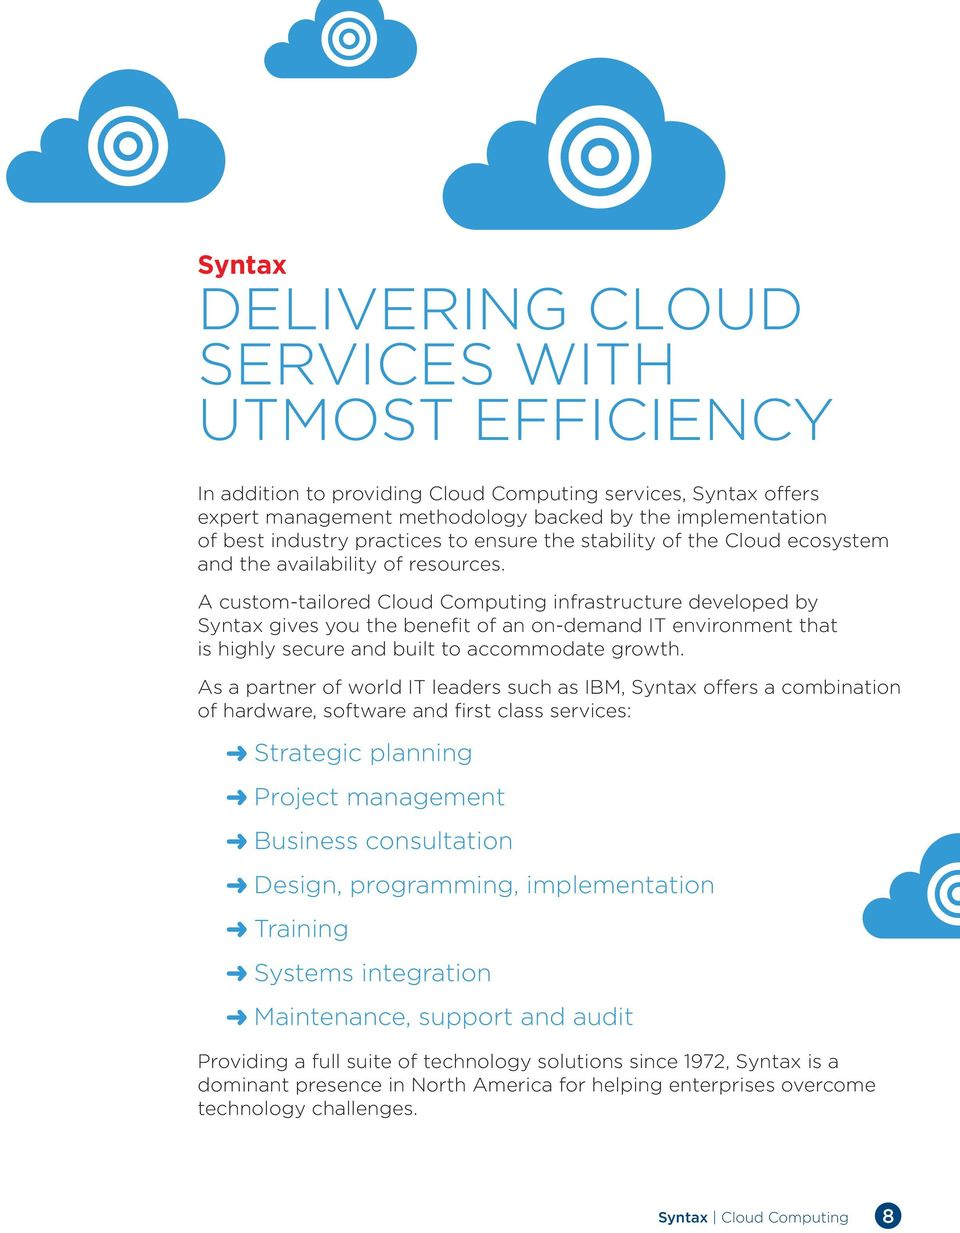 A custom-tailored Cloud Computing infrastructure developed by Syntax gives you the benefit of an on-demand IT environment that is highly secure and built to accommodate growth.